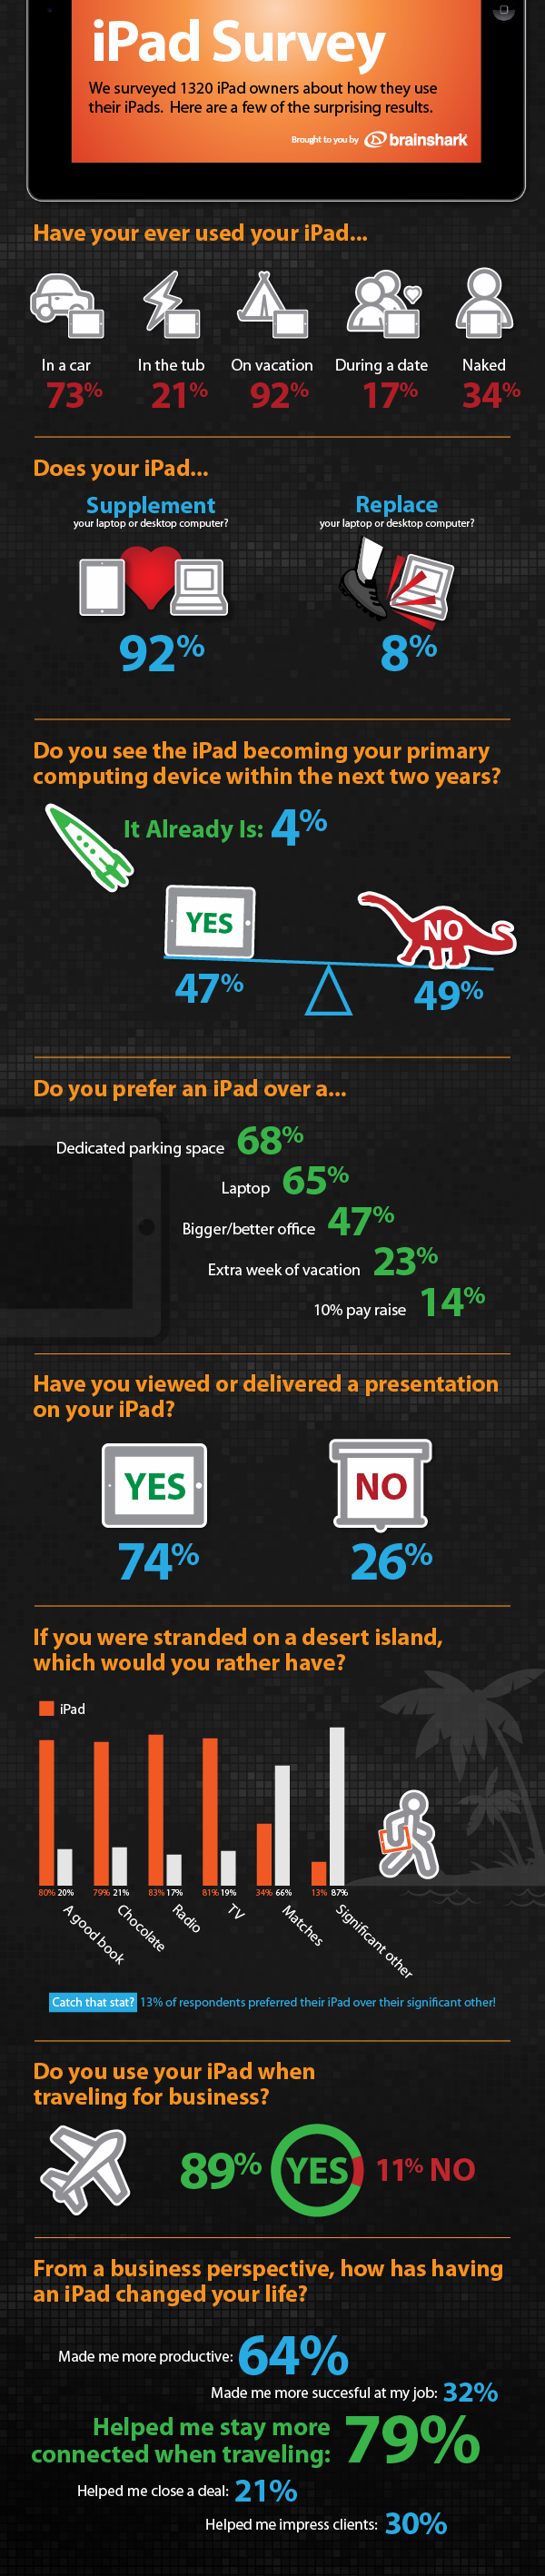 ipad-survey-infographic2